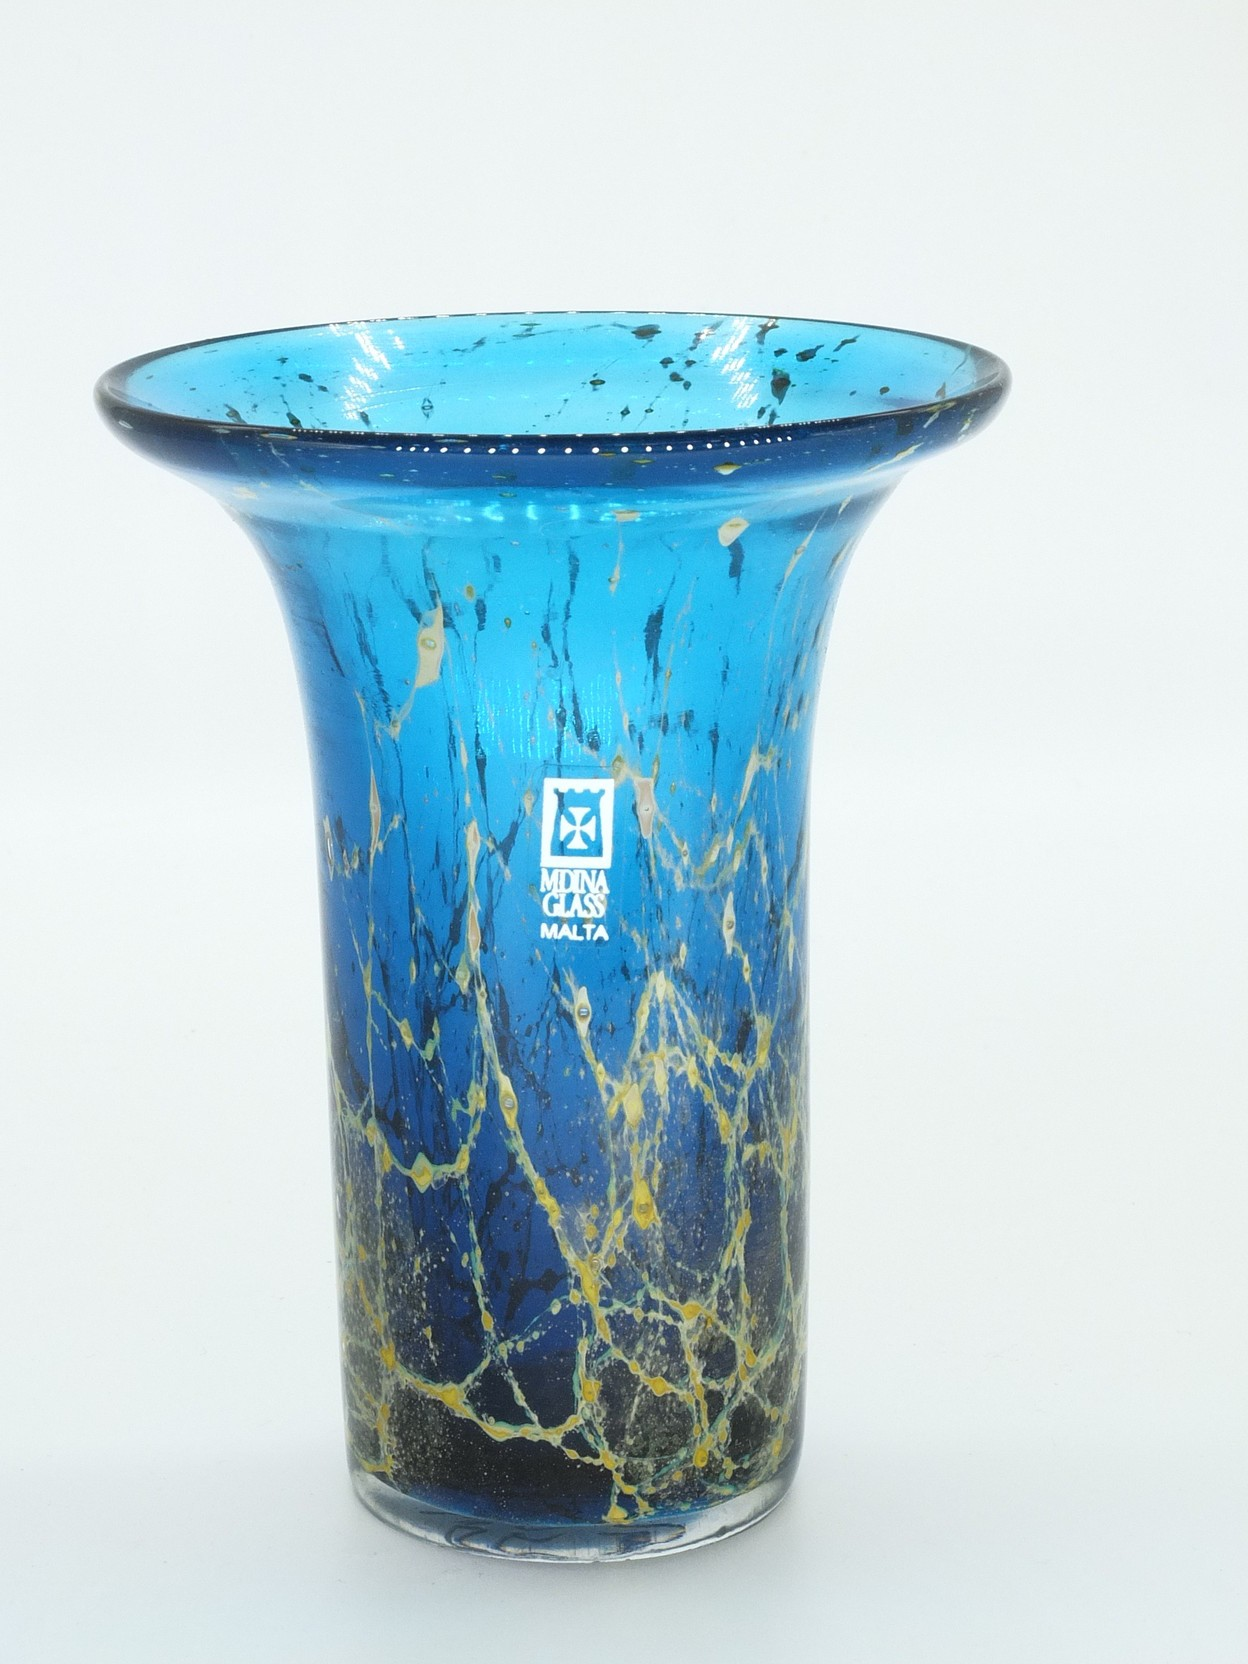 'Mdina Malta Blue and Green Glass Vase'